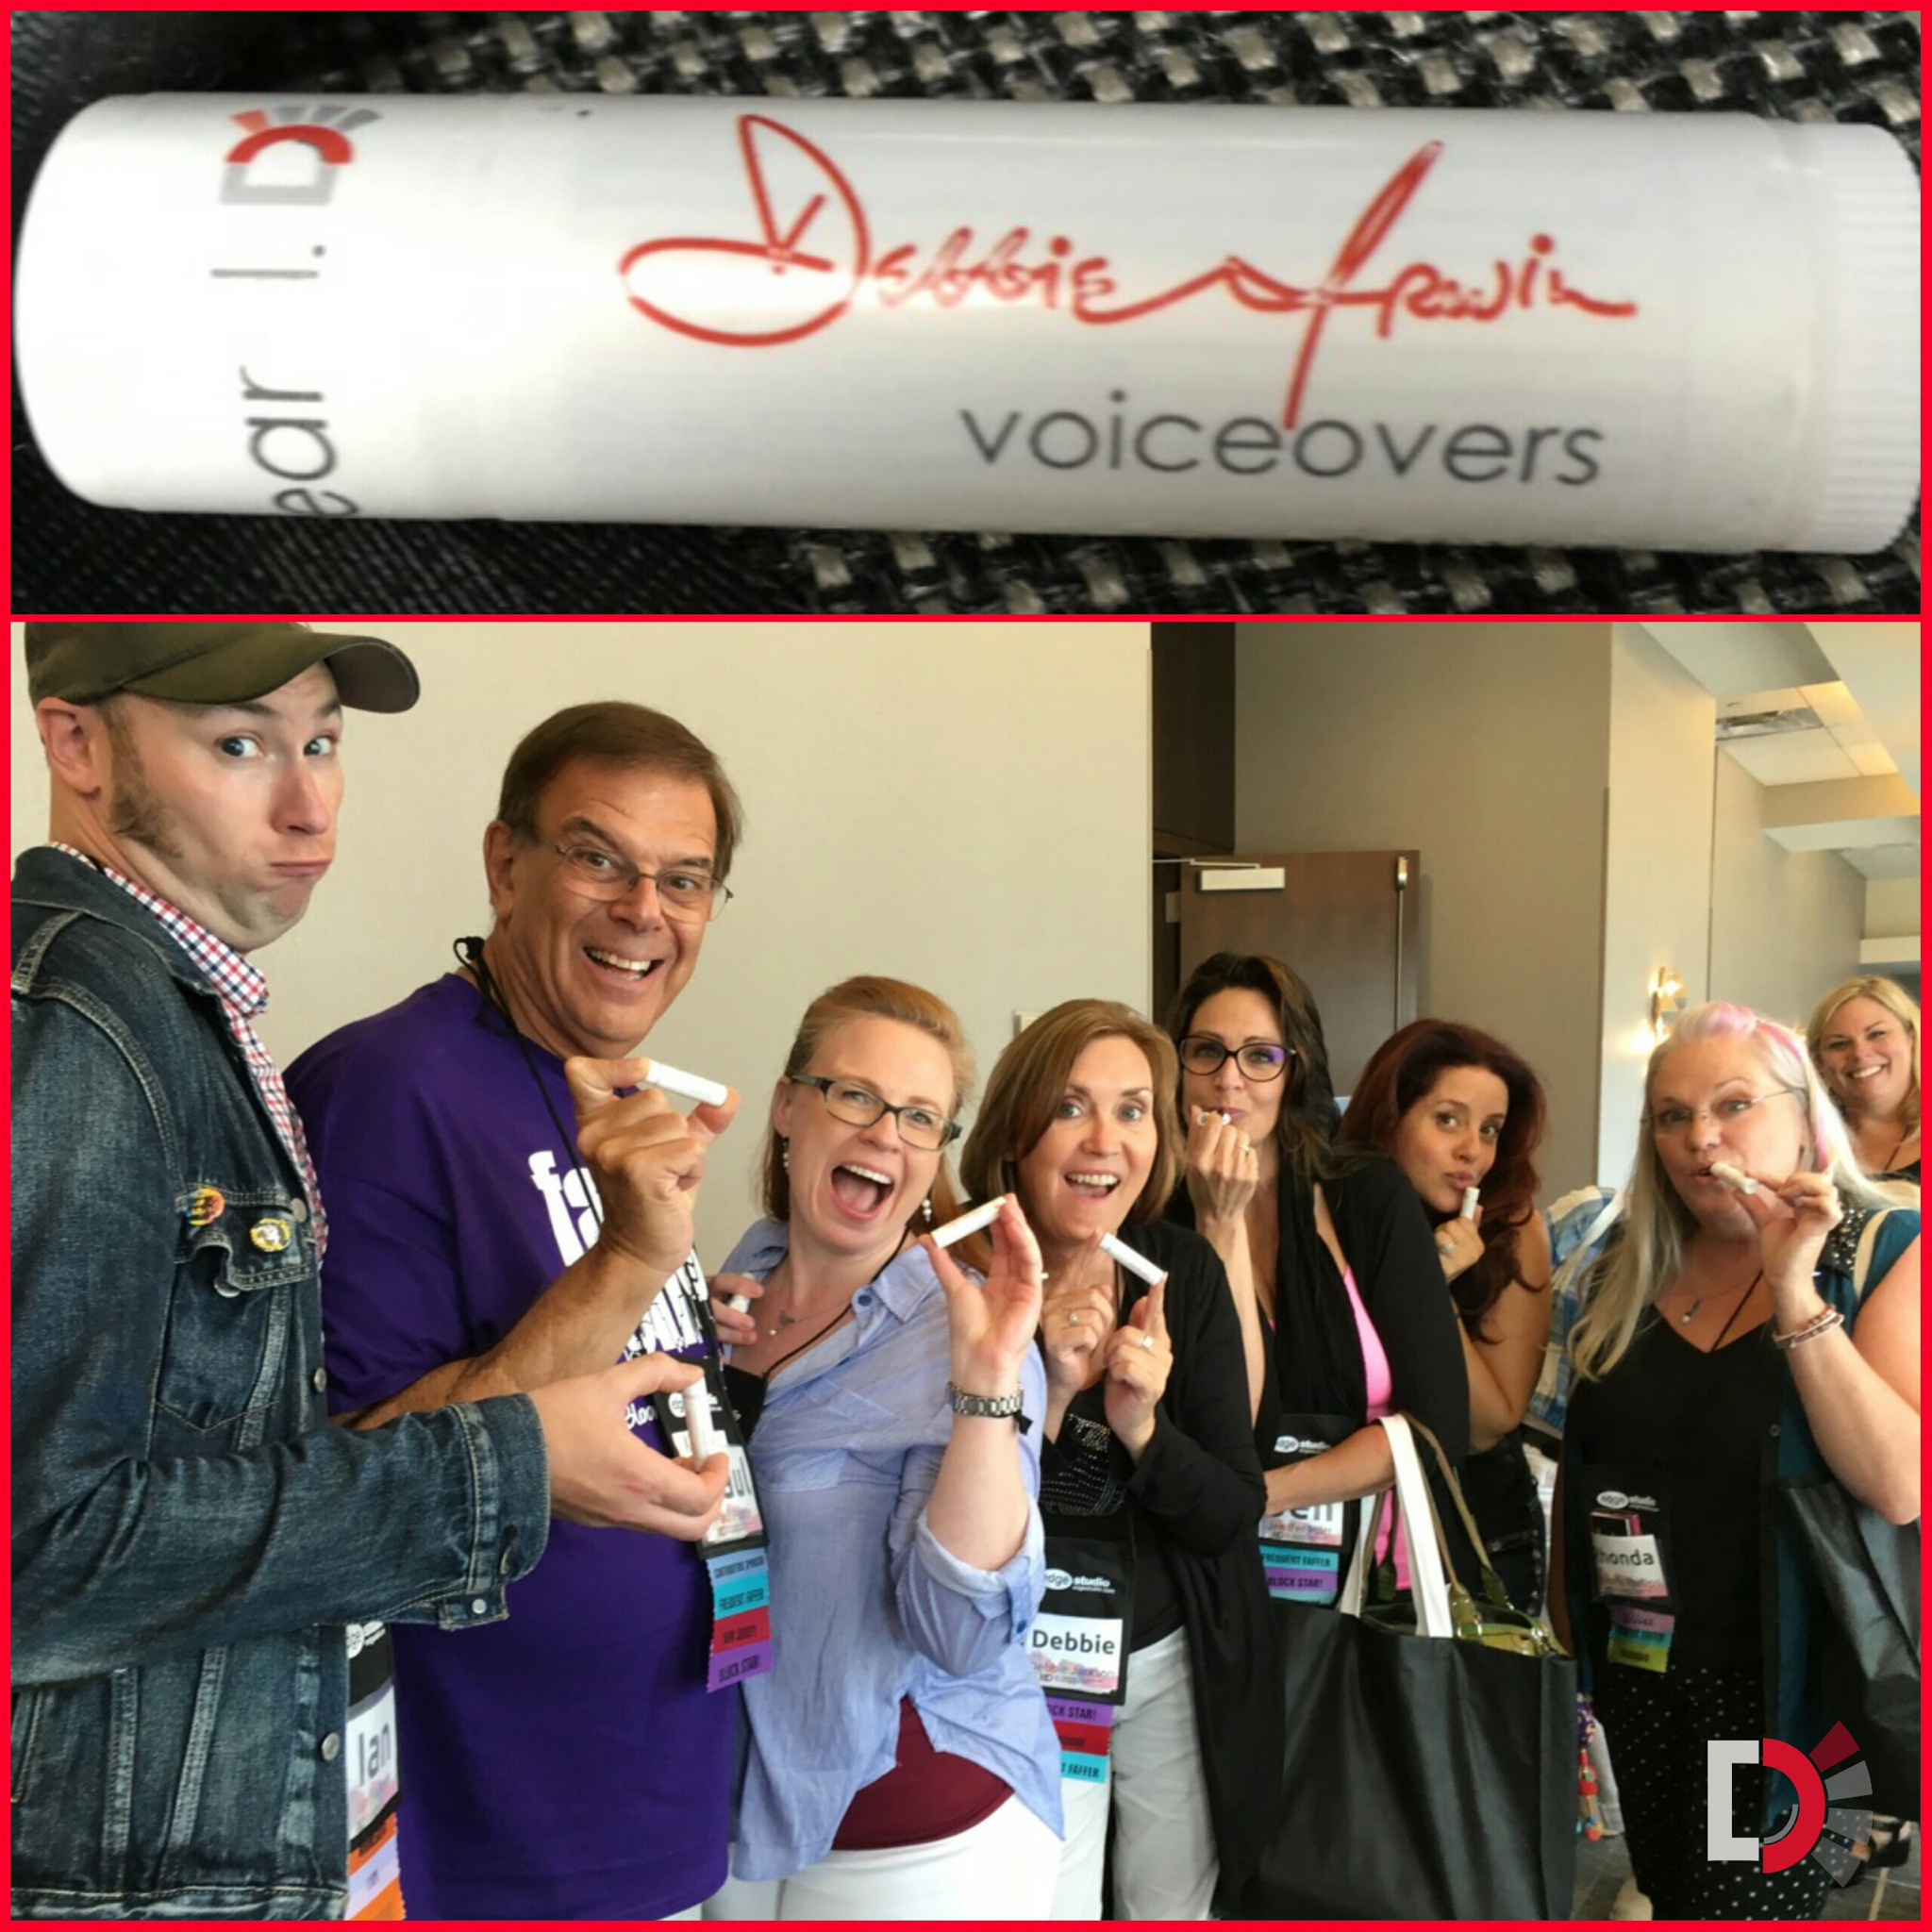 Faffcon Friends taking time out to apply a little Debbie Irwin Voiceovers chap stick!   Want one? Drop me a line!